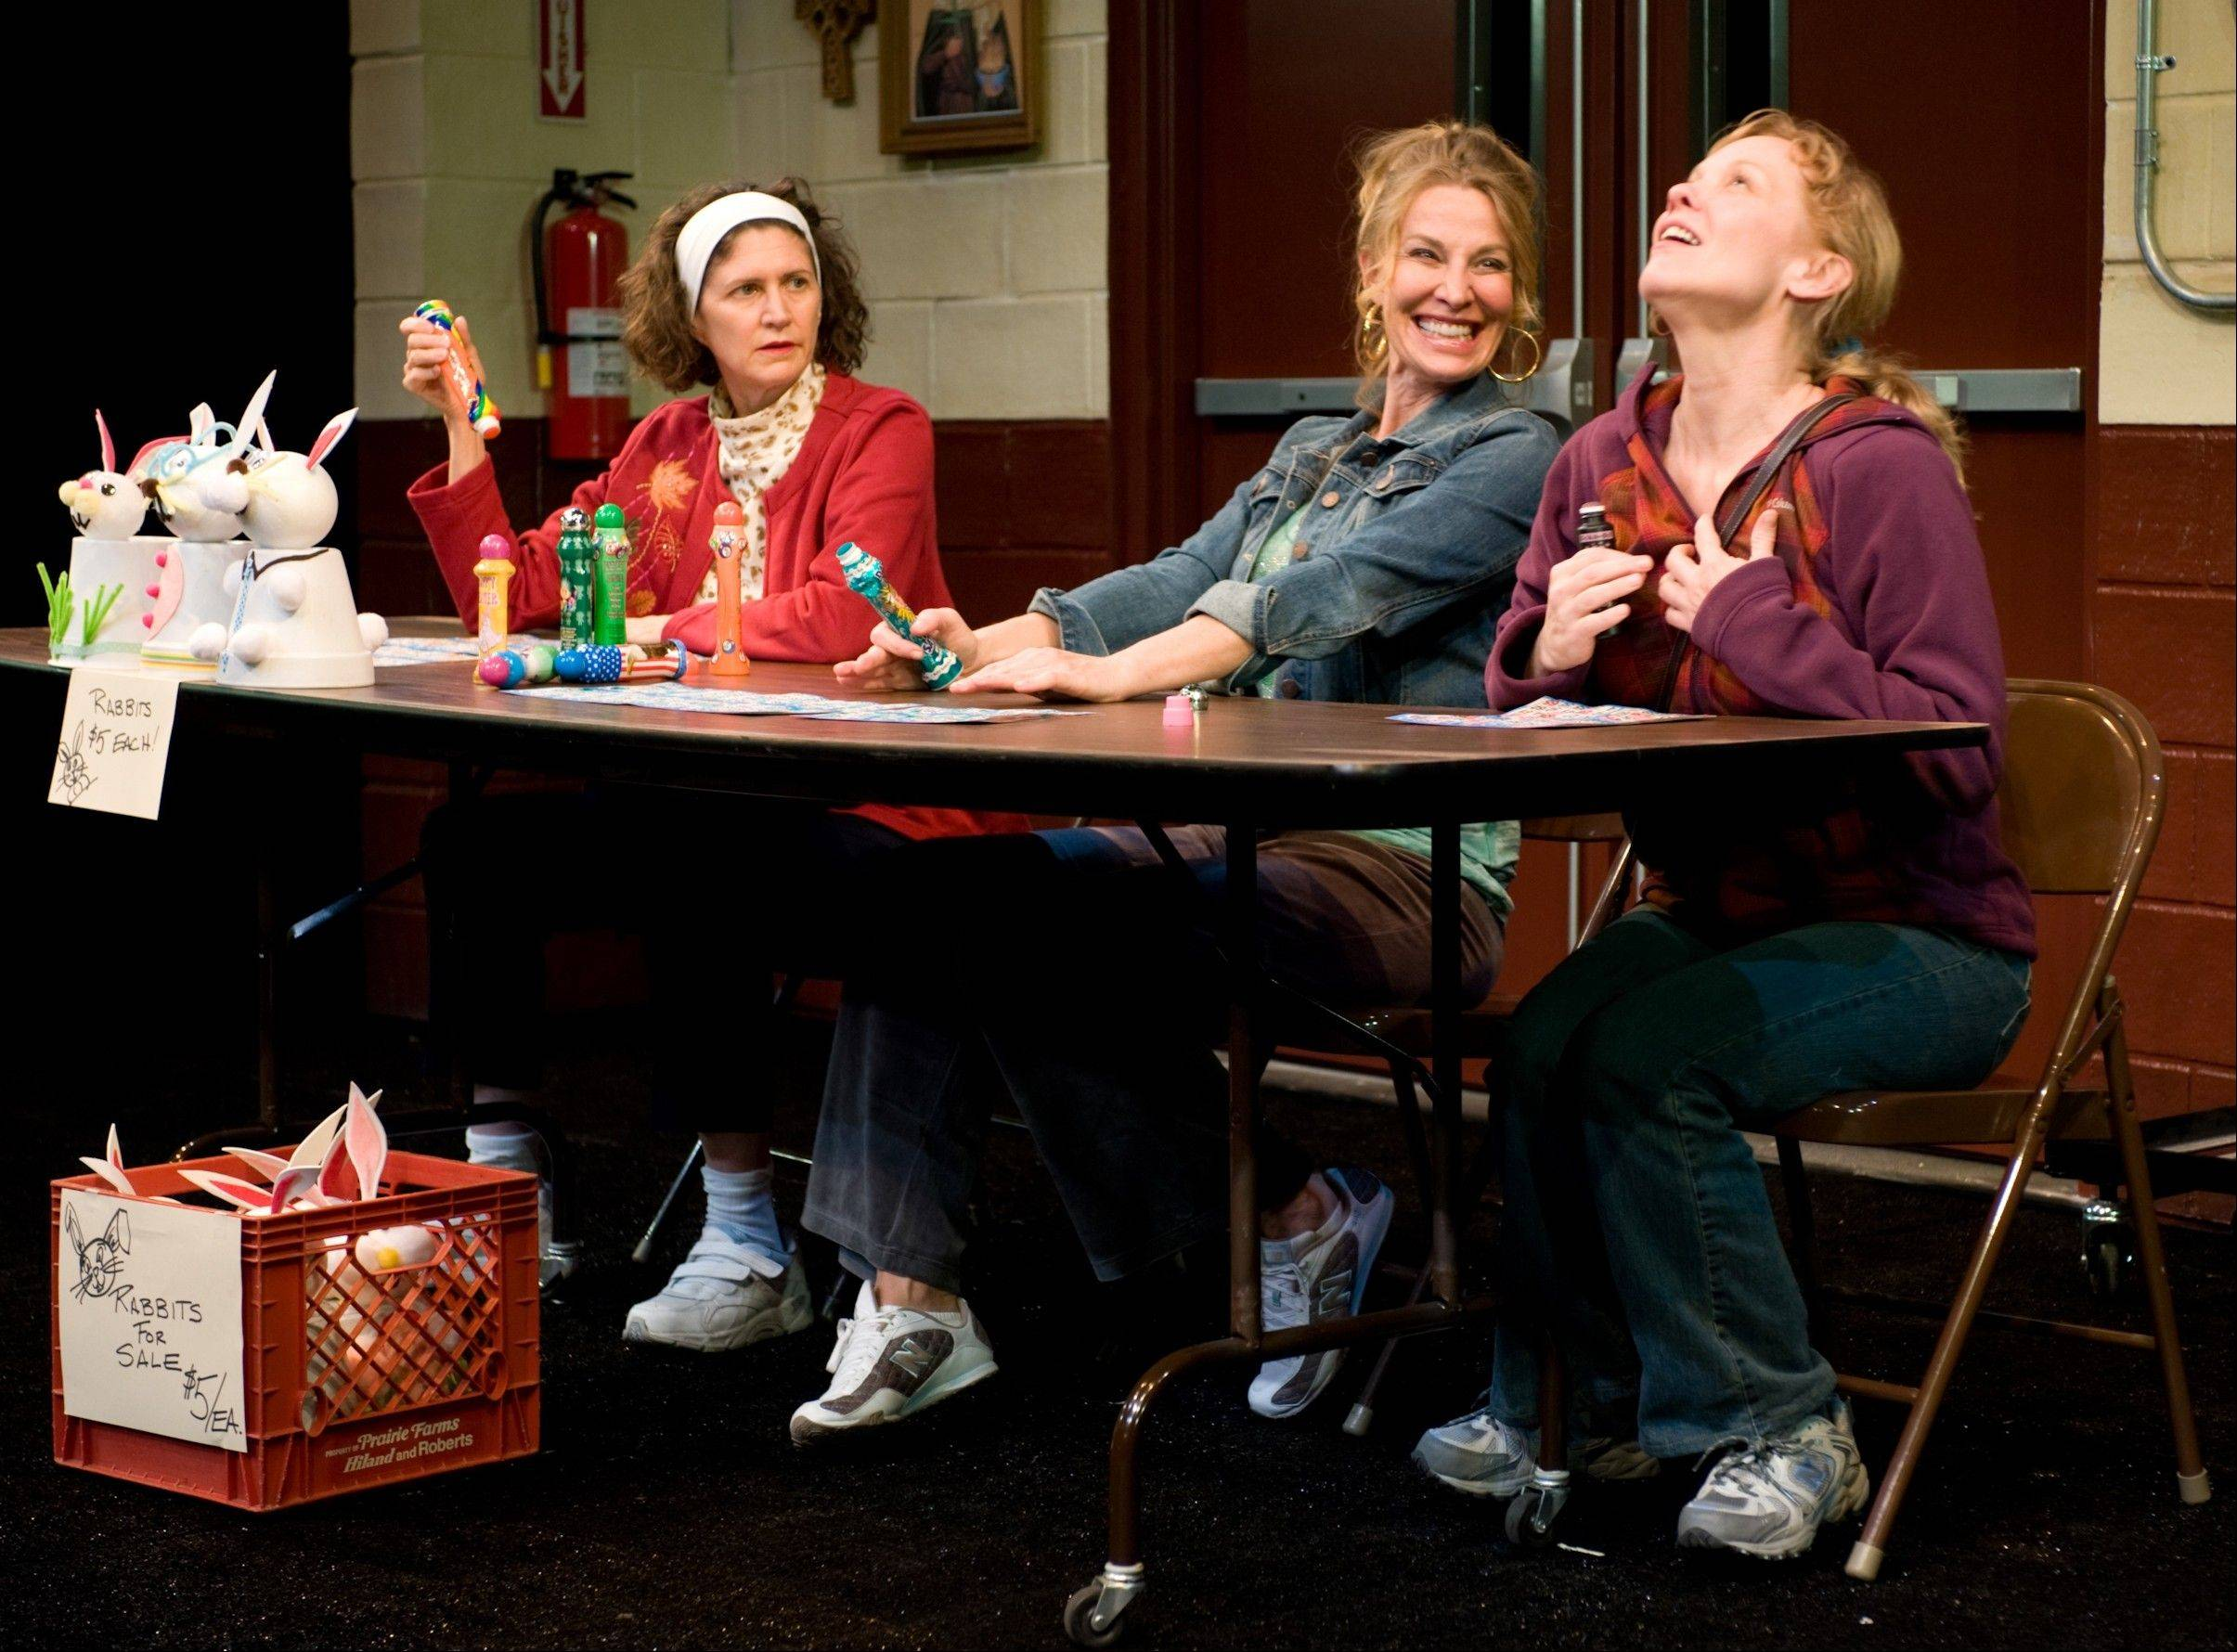 "Newly unemployed Margy (Mariann Mayberry, right) joins friends Jean (Lusia Strus, center) and Dottie (Molly Regan) at Bingo, hoping to win enough to buy a new dress in Steppenwolf Theatre's ""Good People,"" directed by K. Todd Freeman."